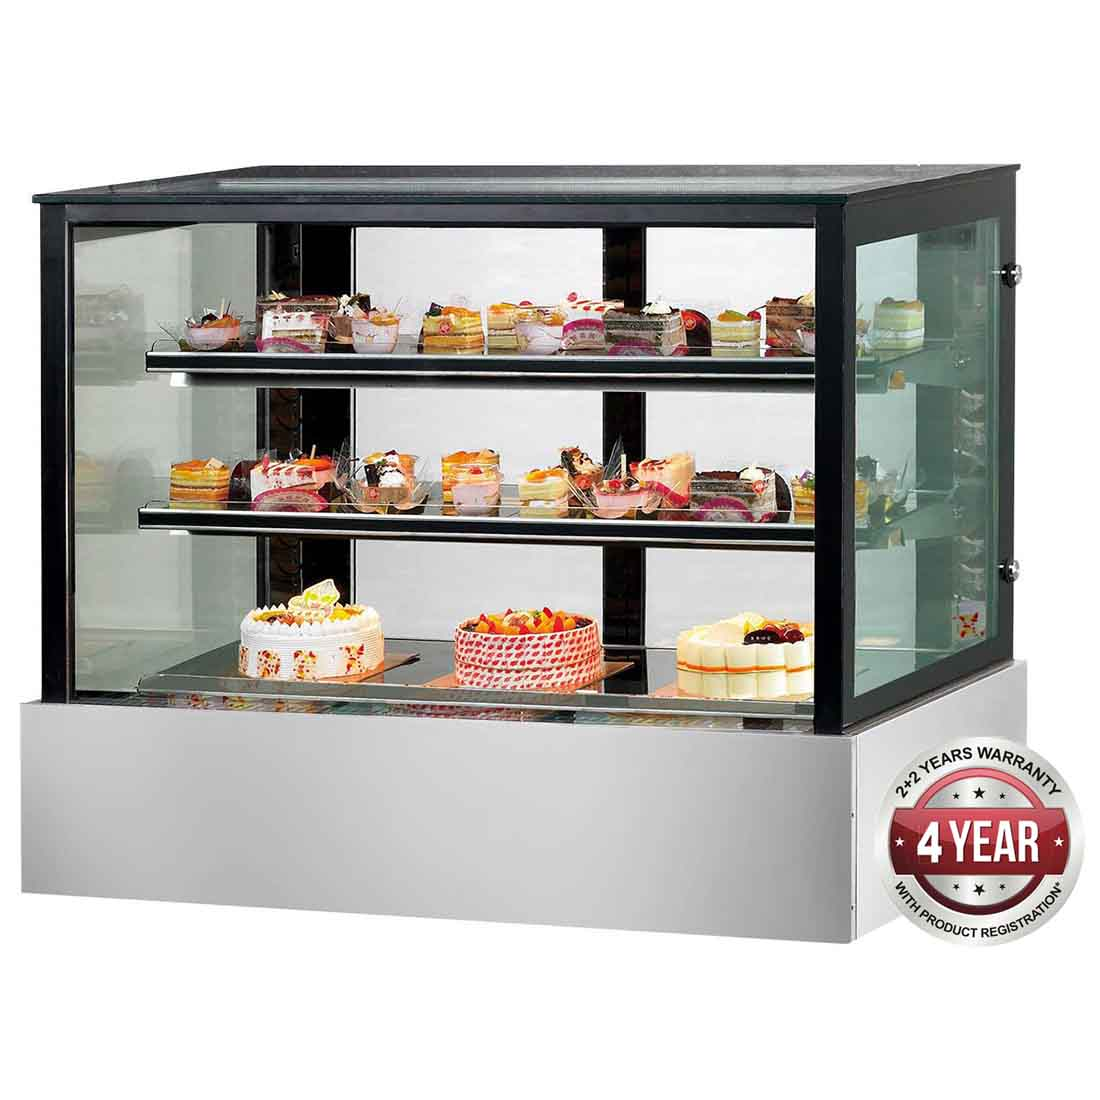 SSU90-2XB Black Trim Square Glass Cake Display 2 Shelves 900x700x1100